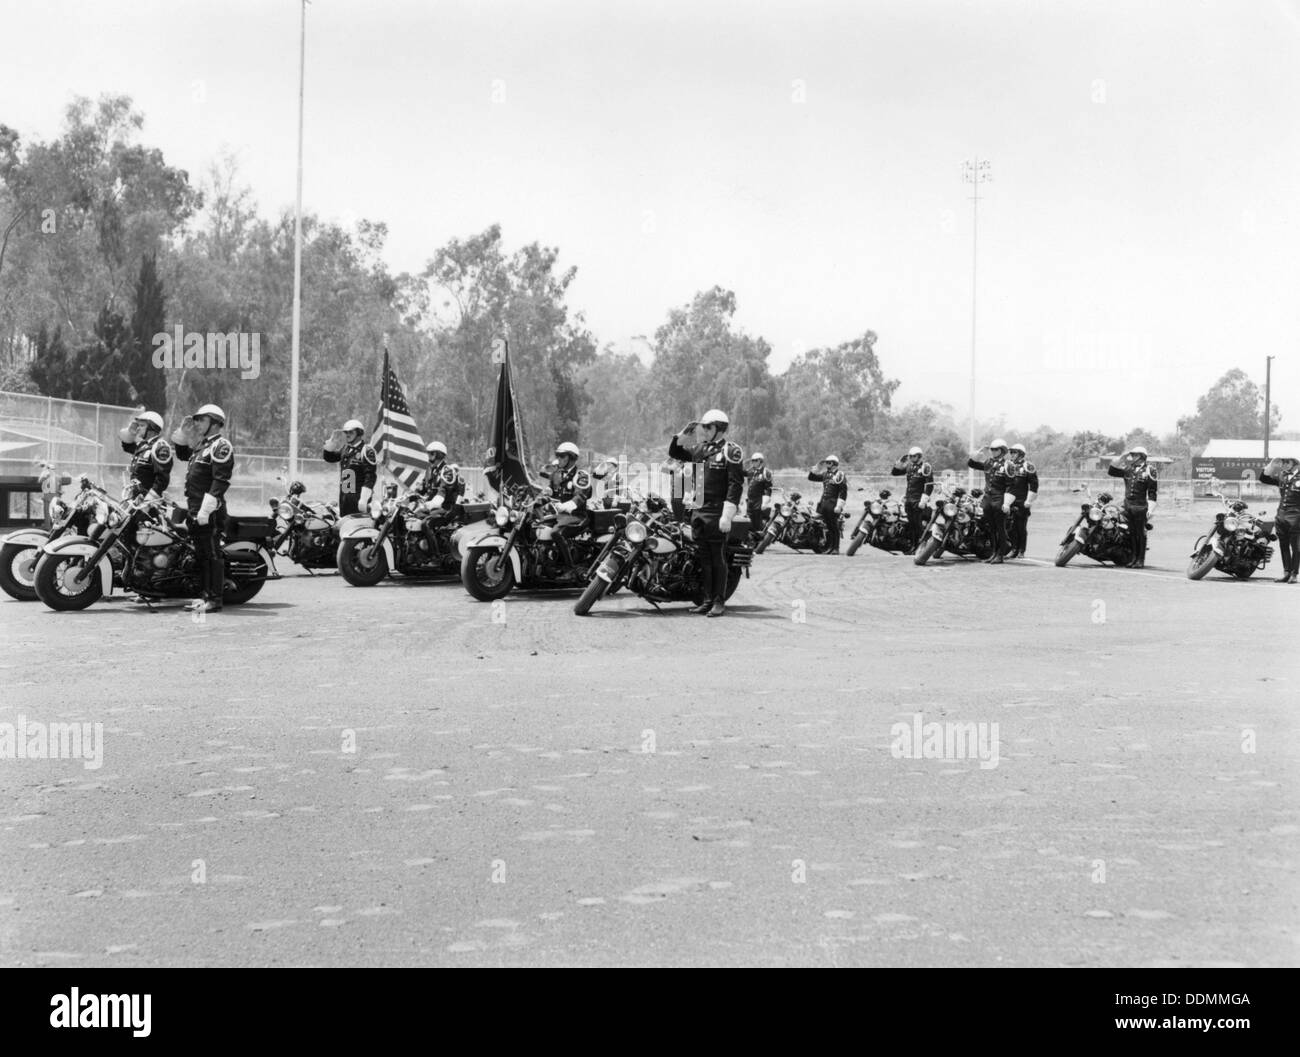 A police patrol with their Harley-Davidsons, America. - Stock Image